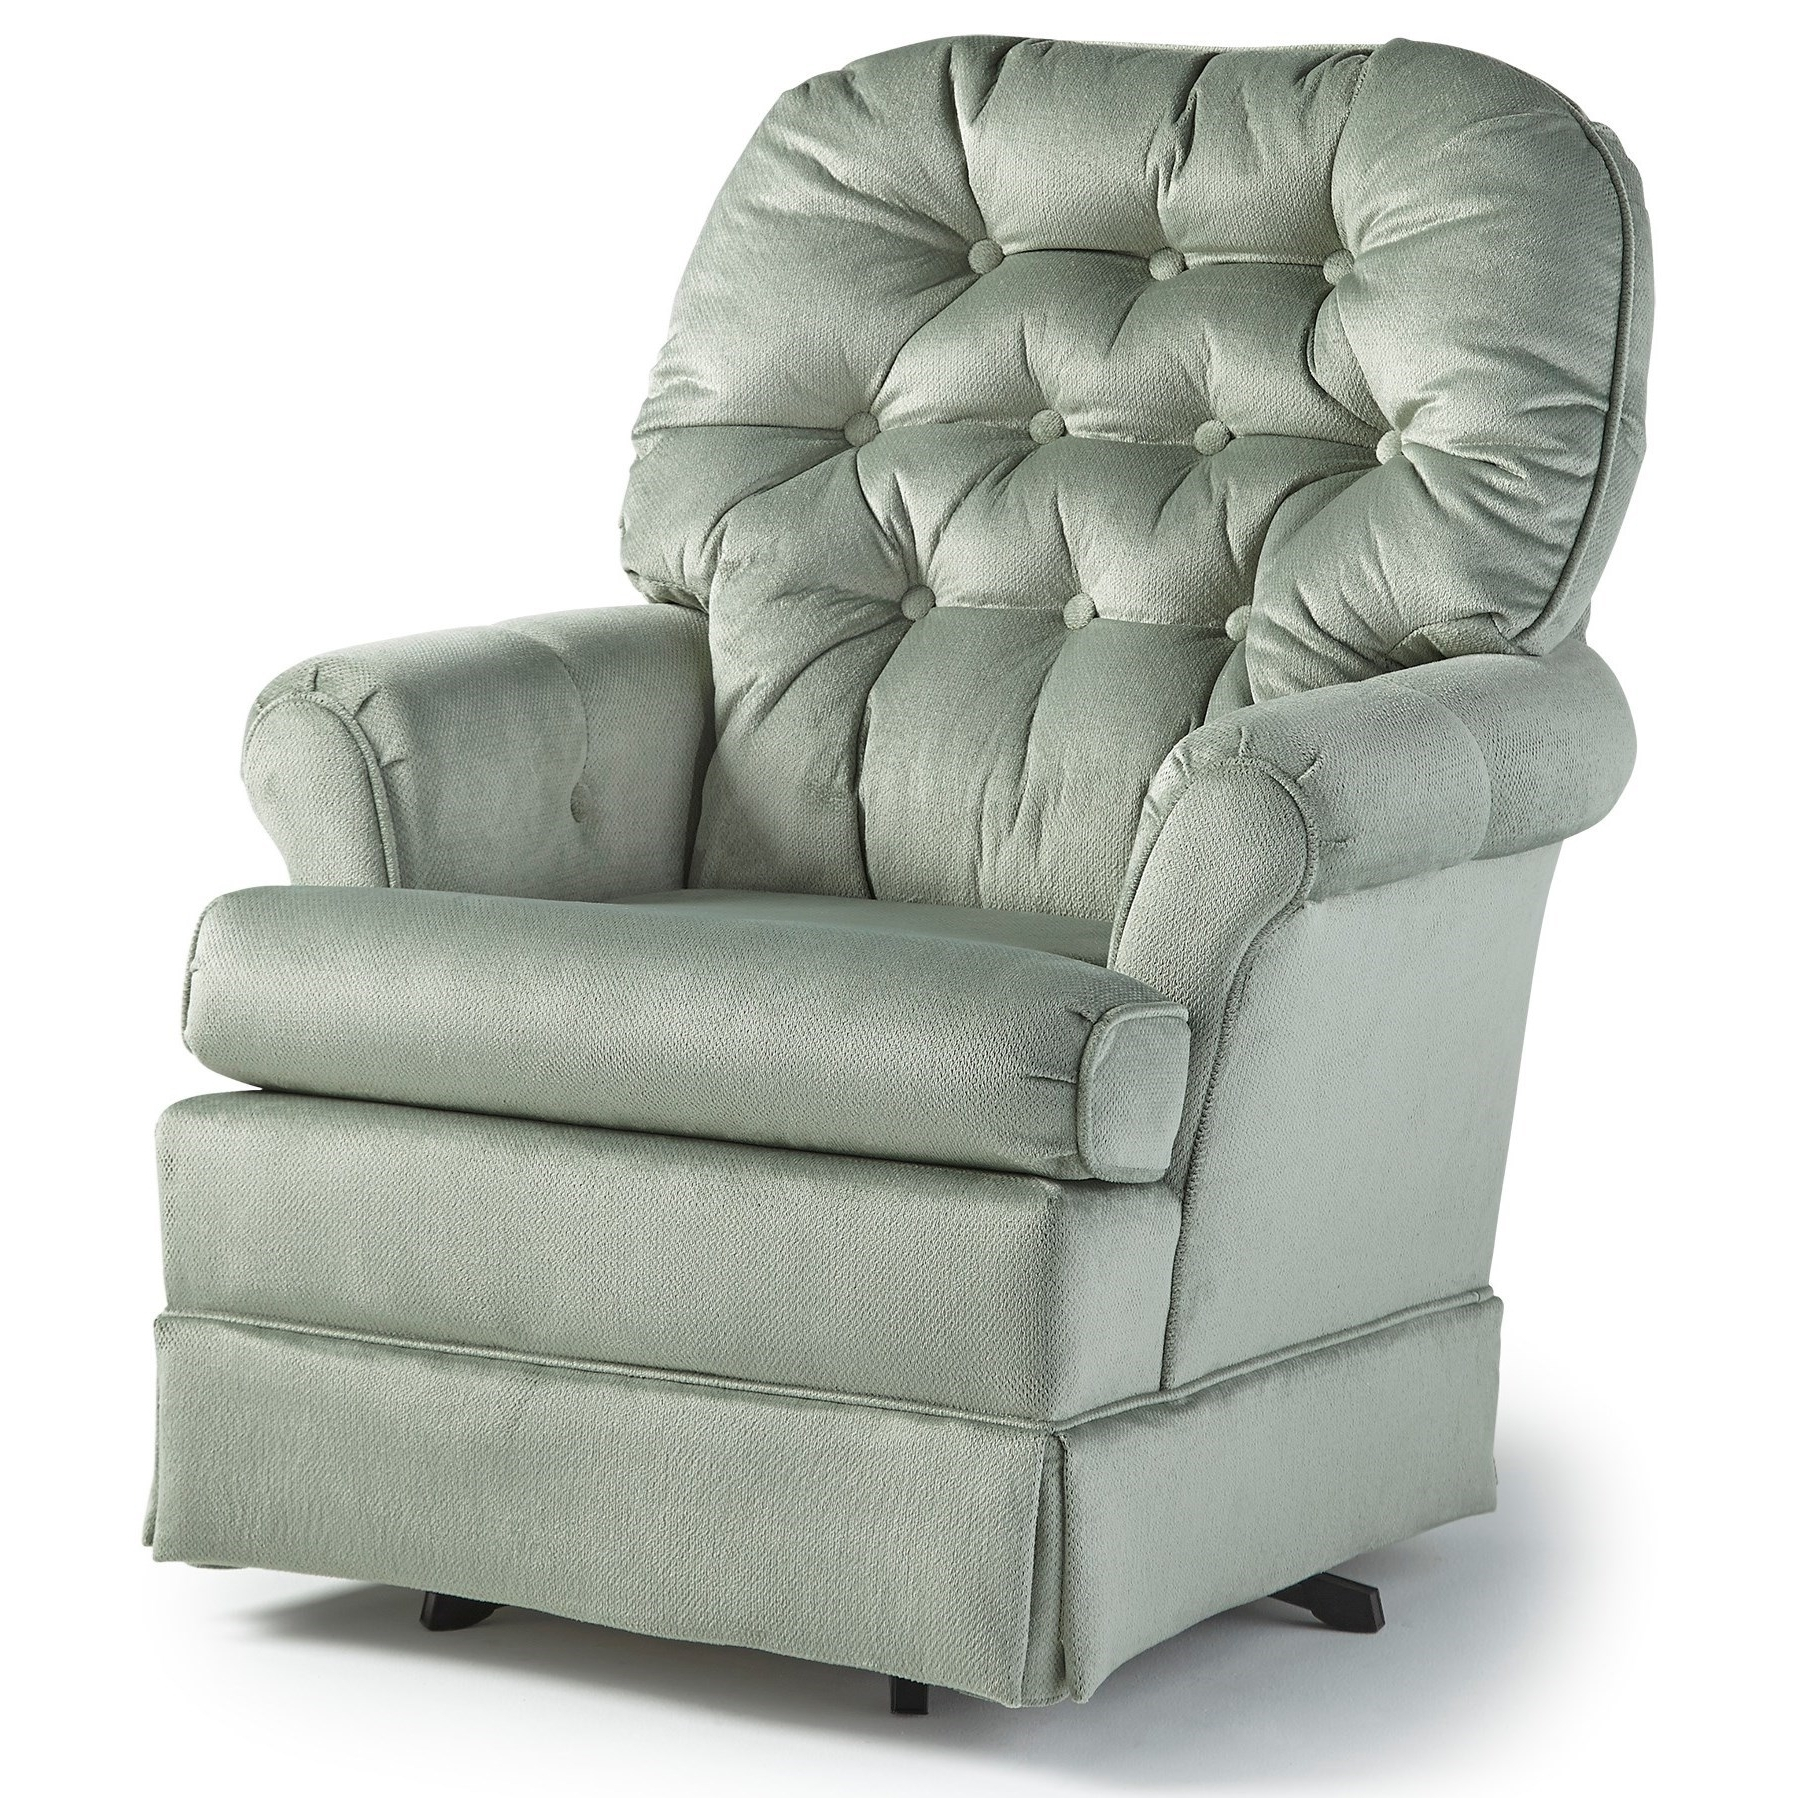 Best Home Furnishings Swivel Glide Chairs 1559 Marla Swivel Rocker In Popular Swivel Rocking Chairs (View 2 of 20)